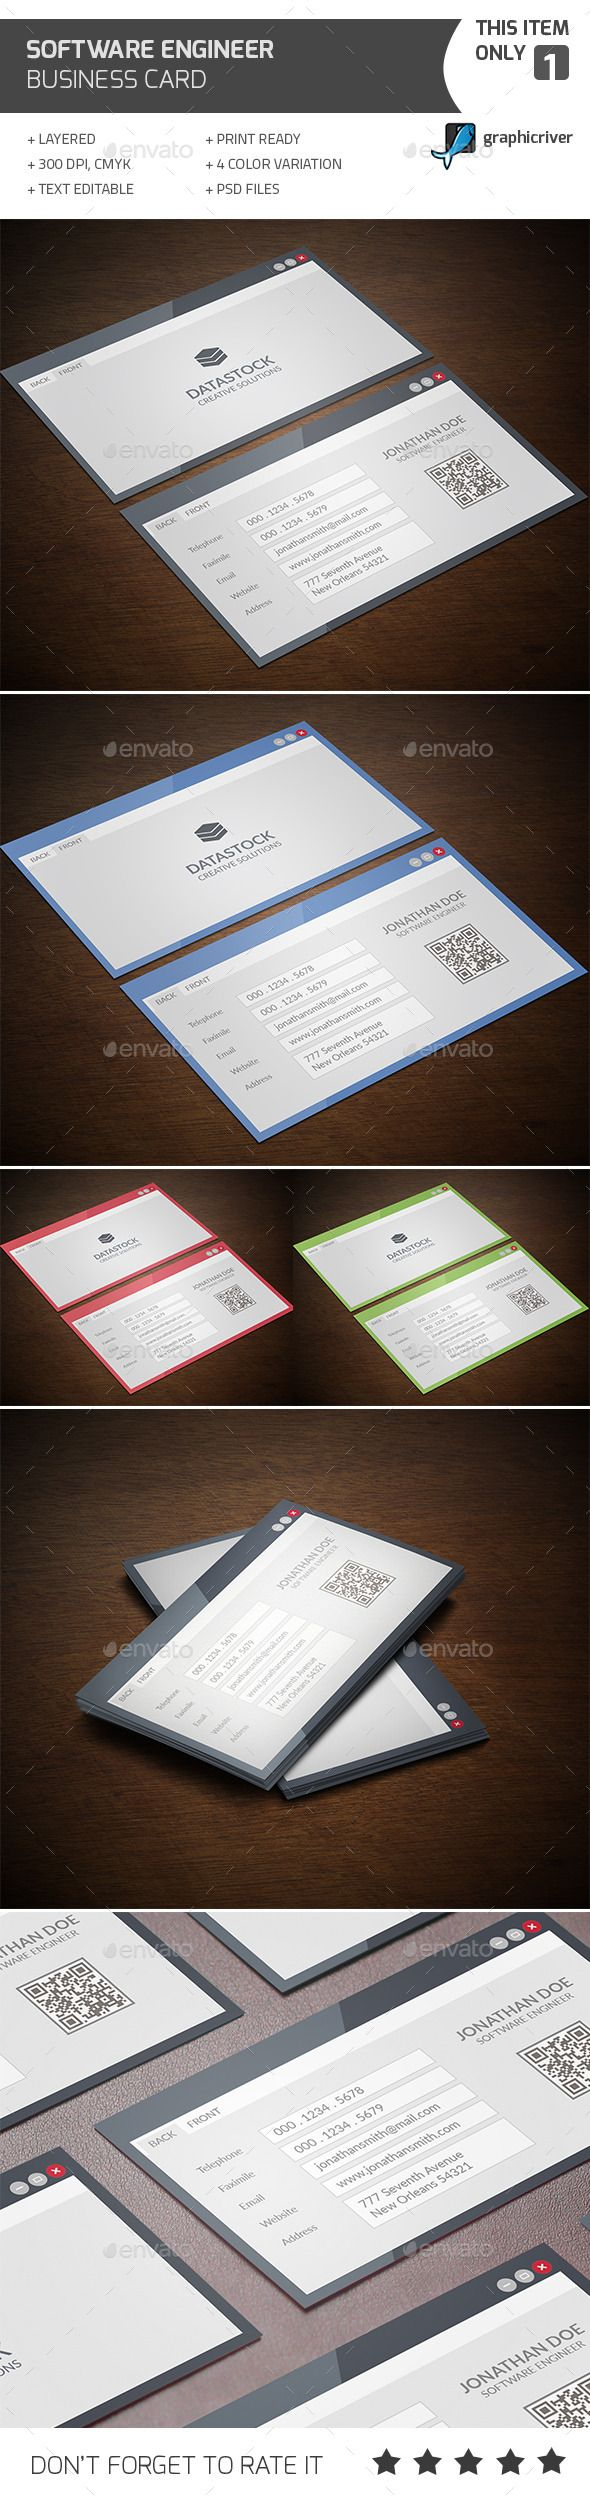 158 best Business Card Templates images on Pinterest | Business card ...